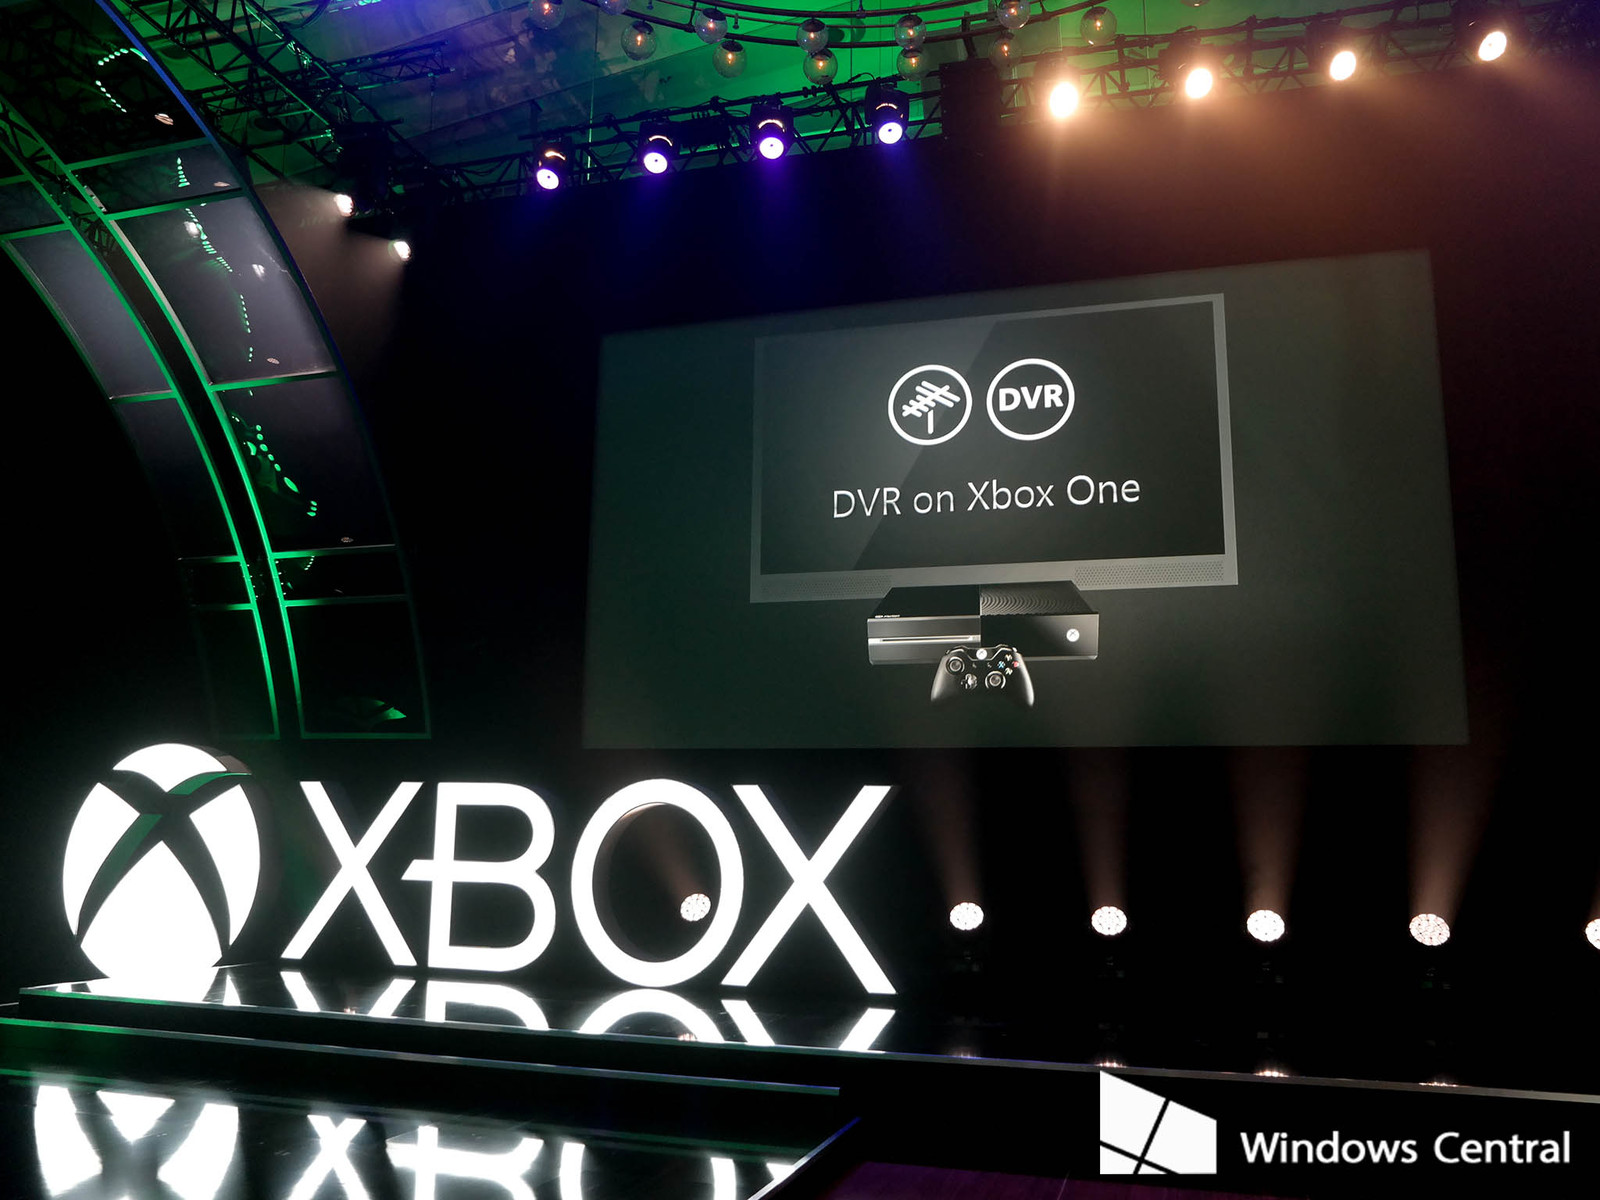 Microsoft Not Adding DVR Feature to Xbox One - Focusing on More Gaming Features